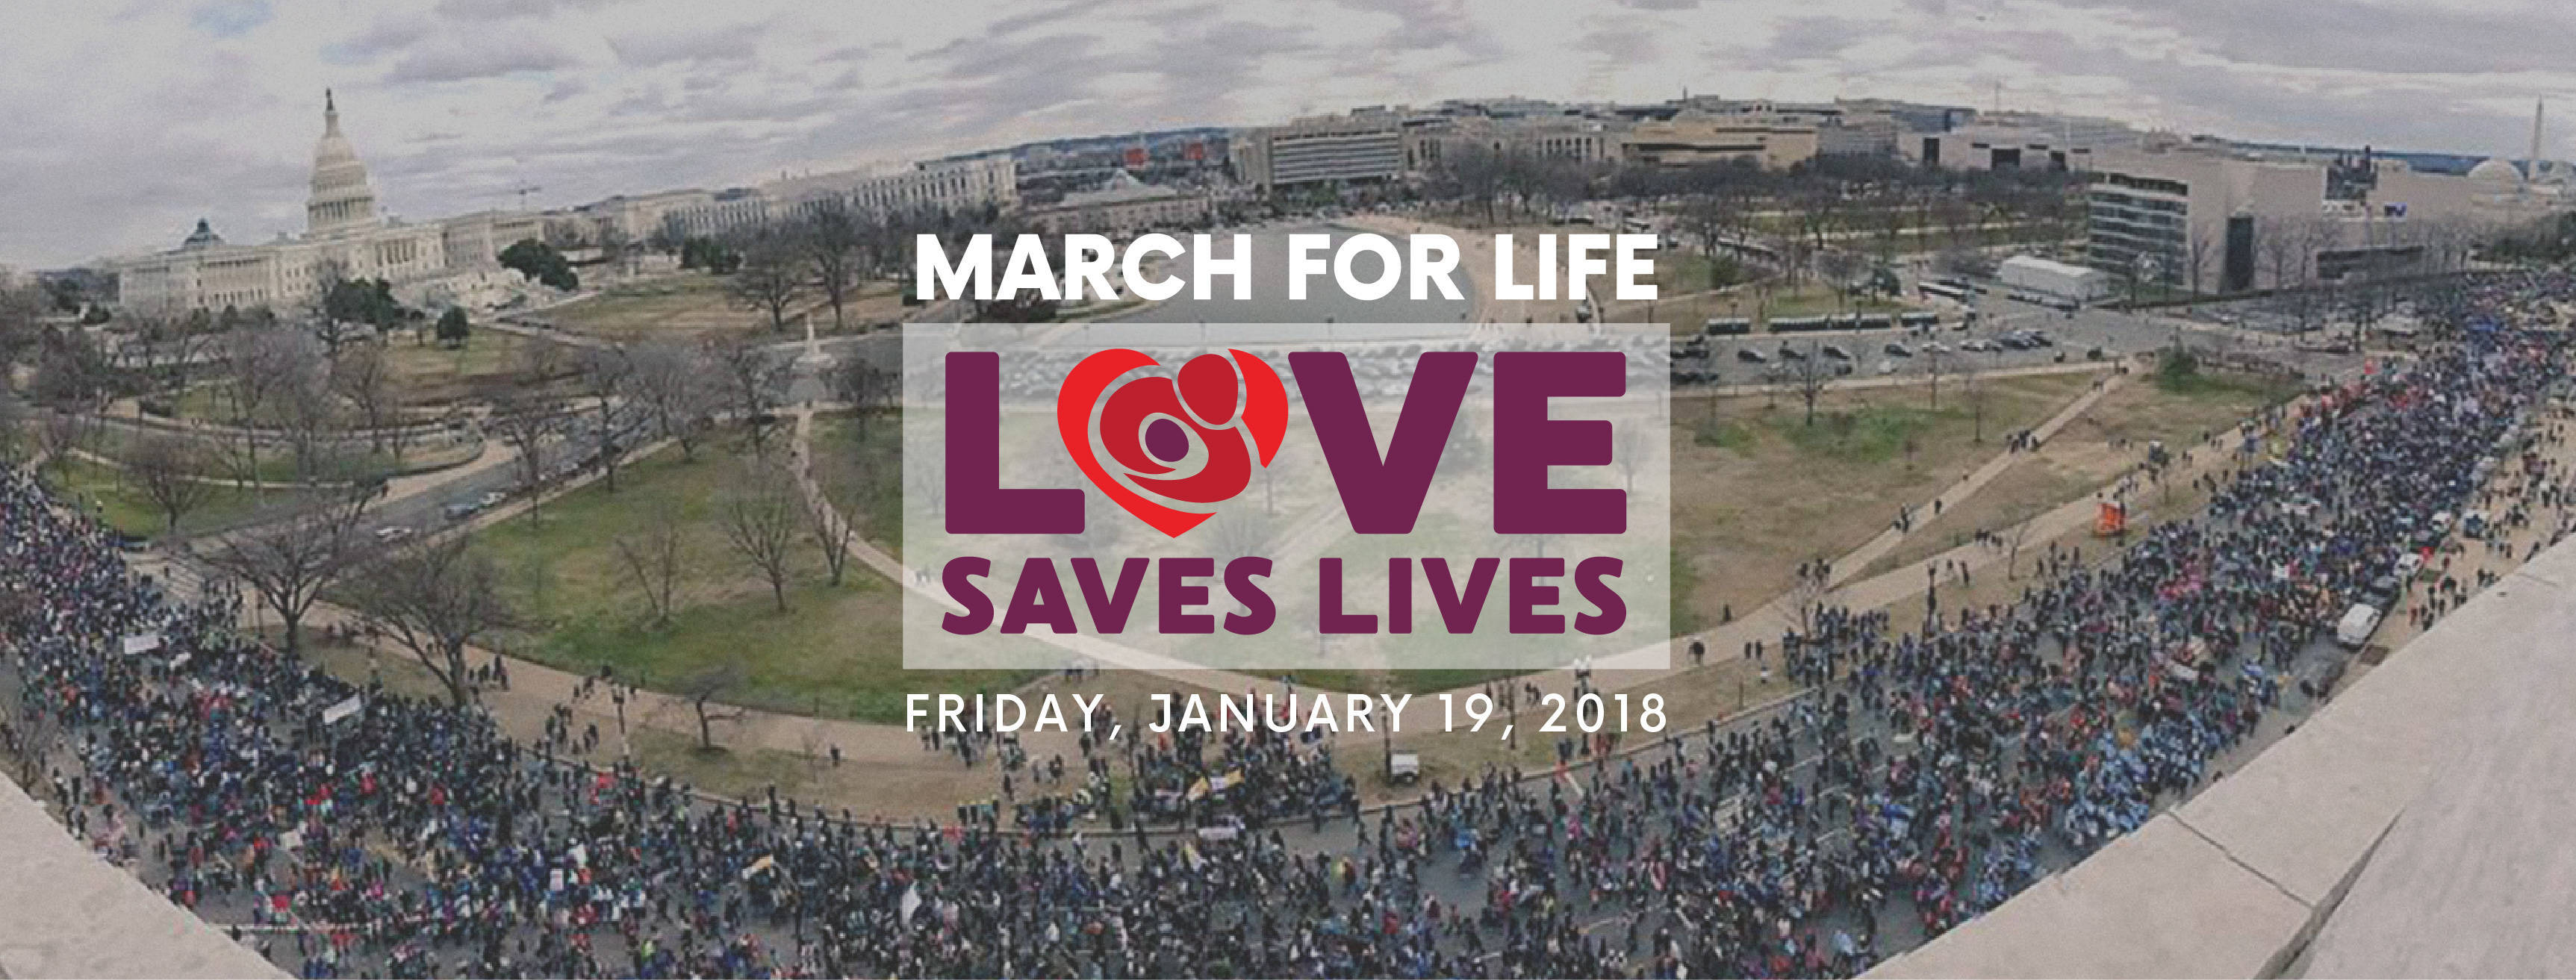 76556b6e545b4a84203c_march_for_life.jpg